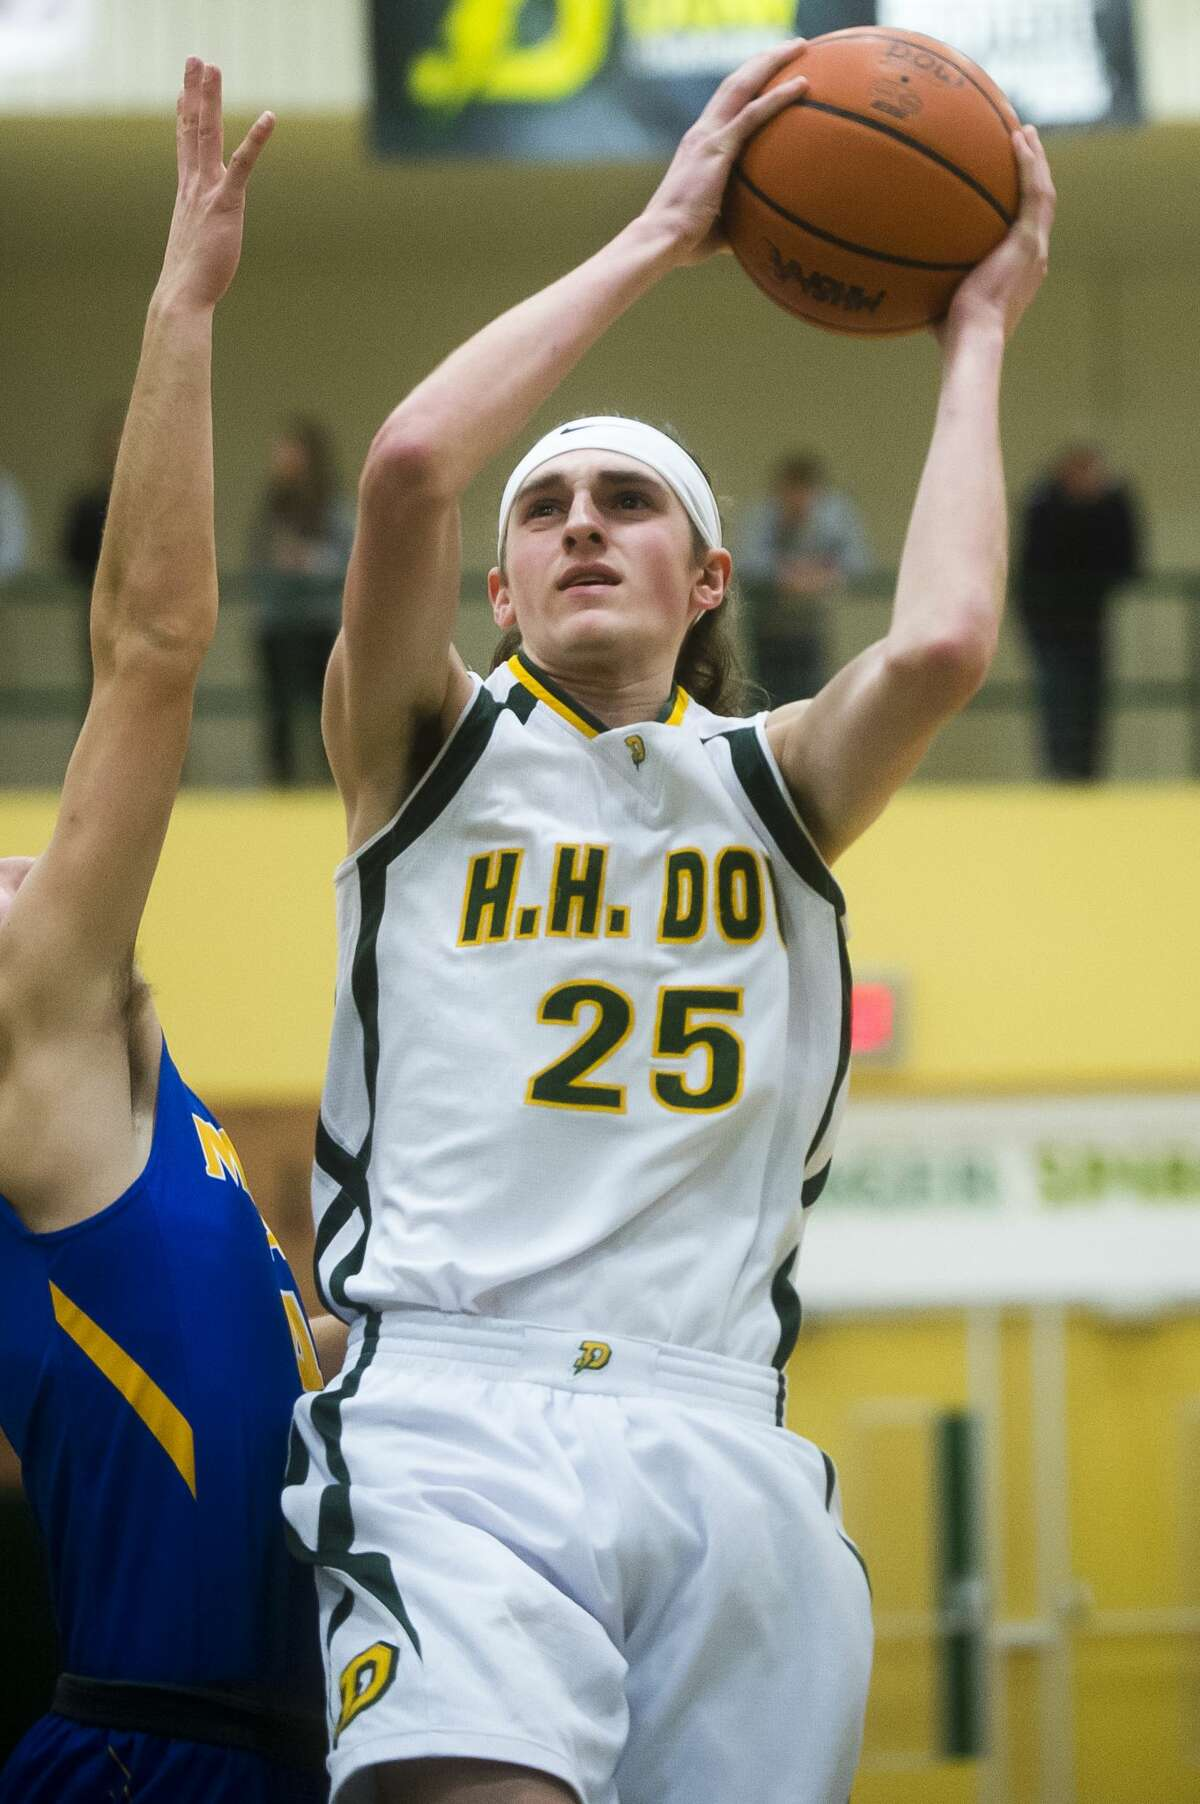 Dow senior Zac Chichester takes a shot during the Chargers' game against Midland on Friday, Feb. 9, 2018 at H. H. Dow High School. (Katy Kildee/kkildee@mdn.net)